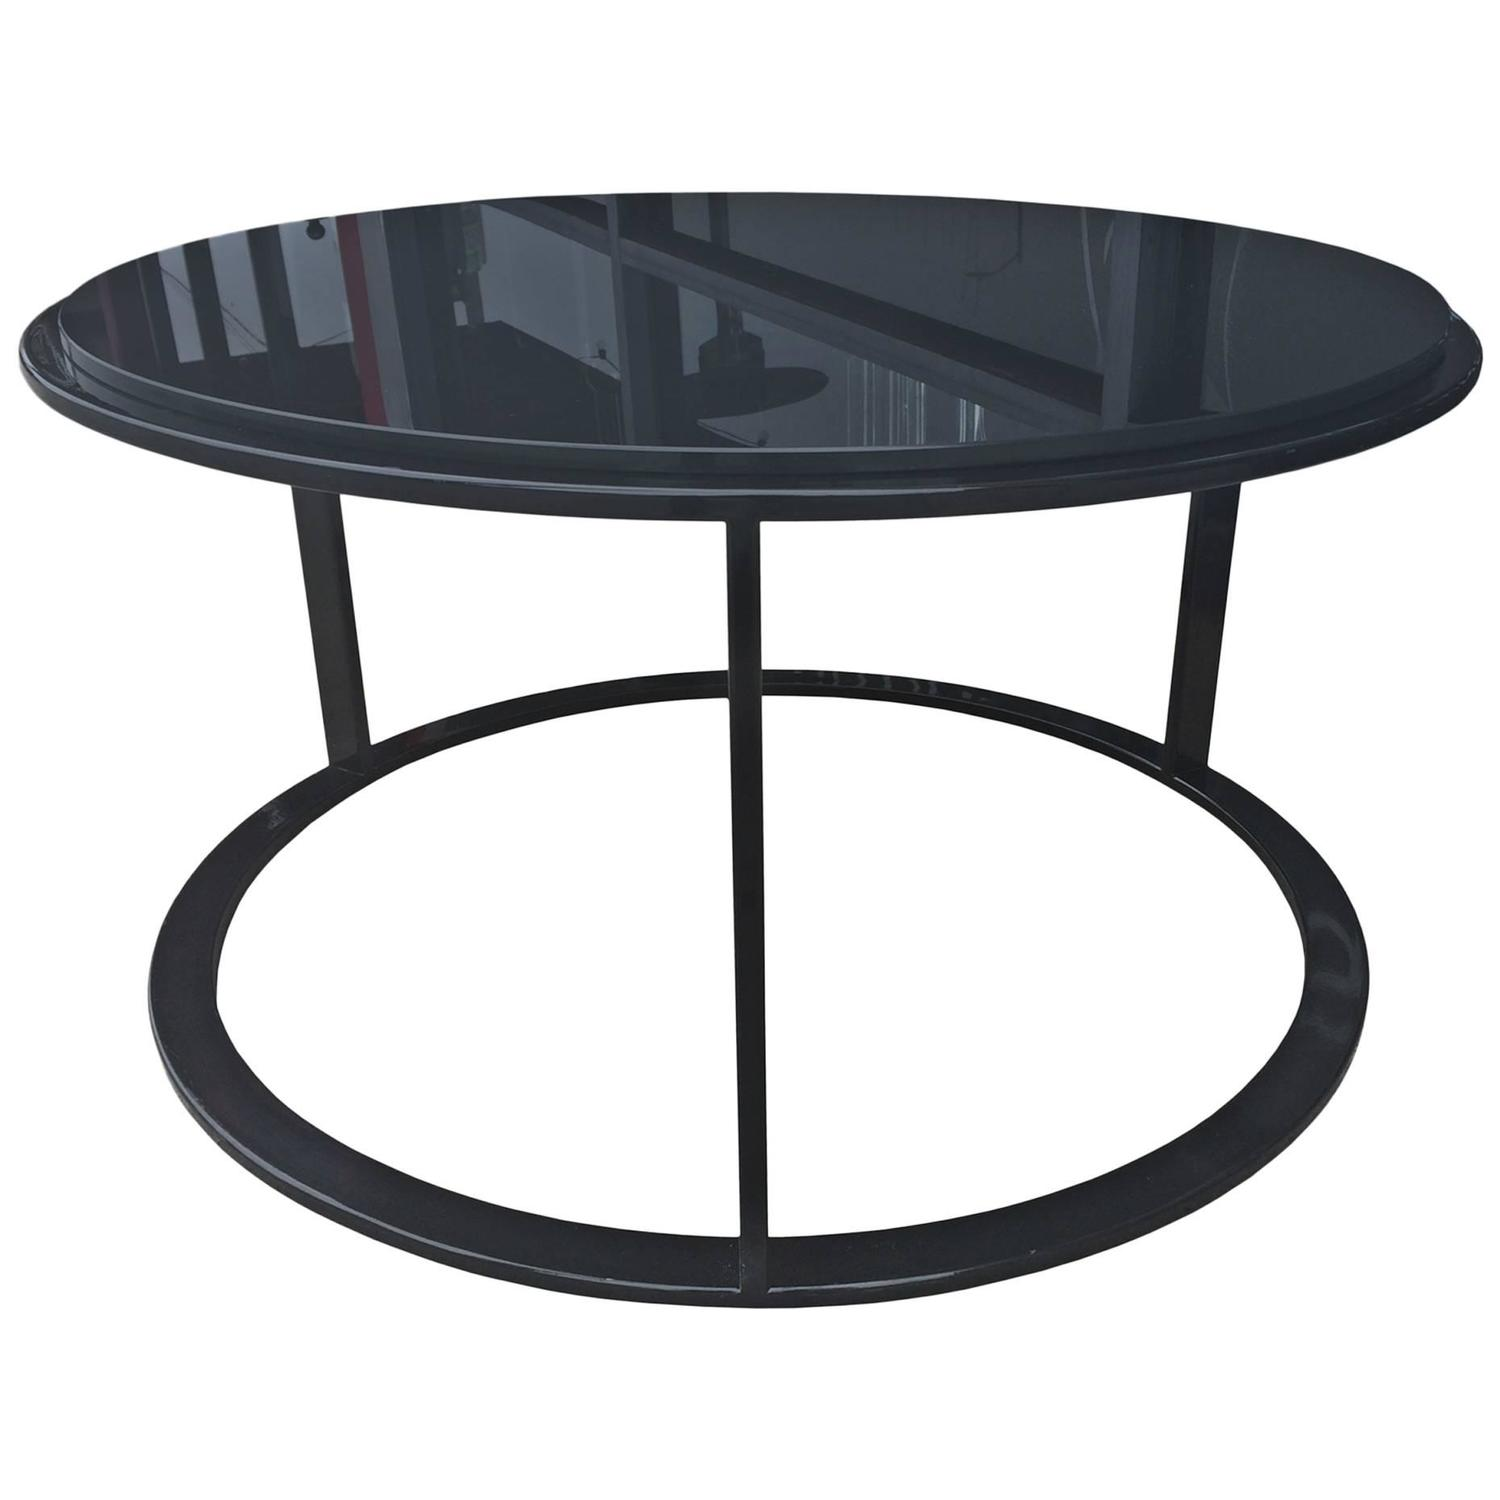 "Mera"" Coffee Table by Antonio Citterio for B&B Italia For Sale at"